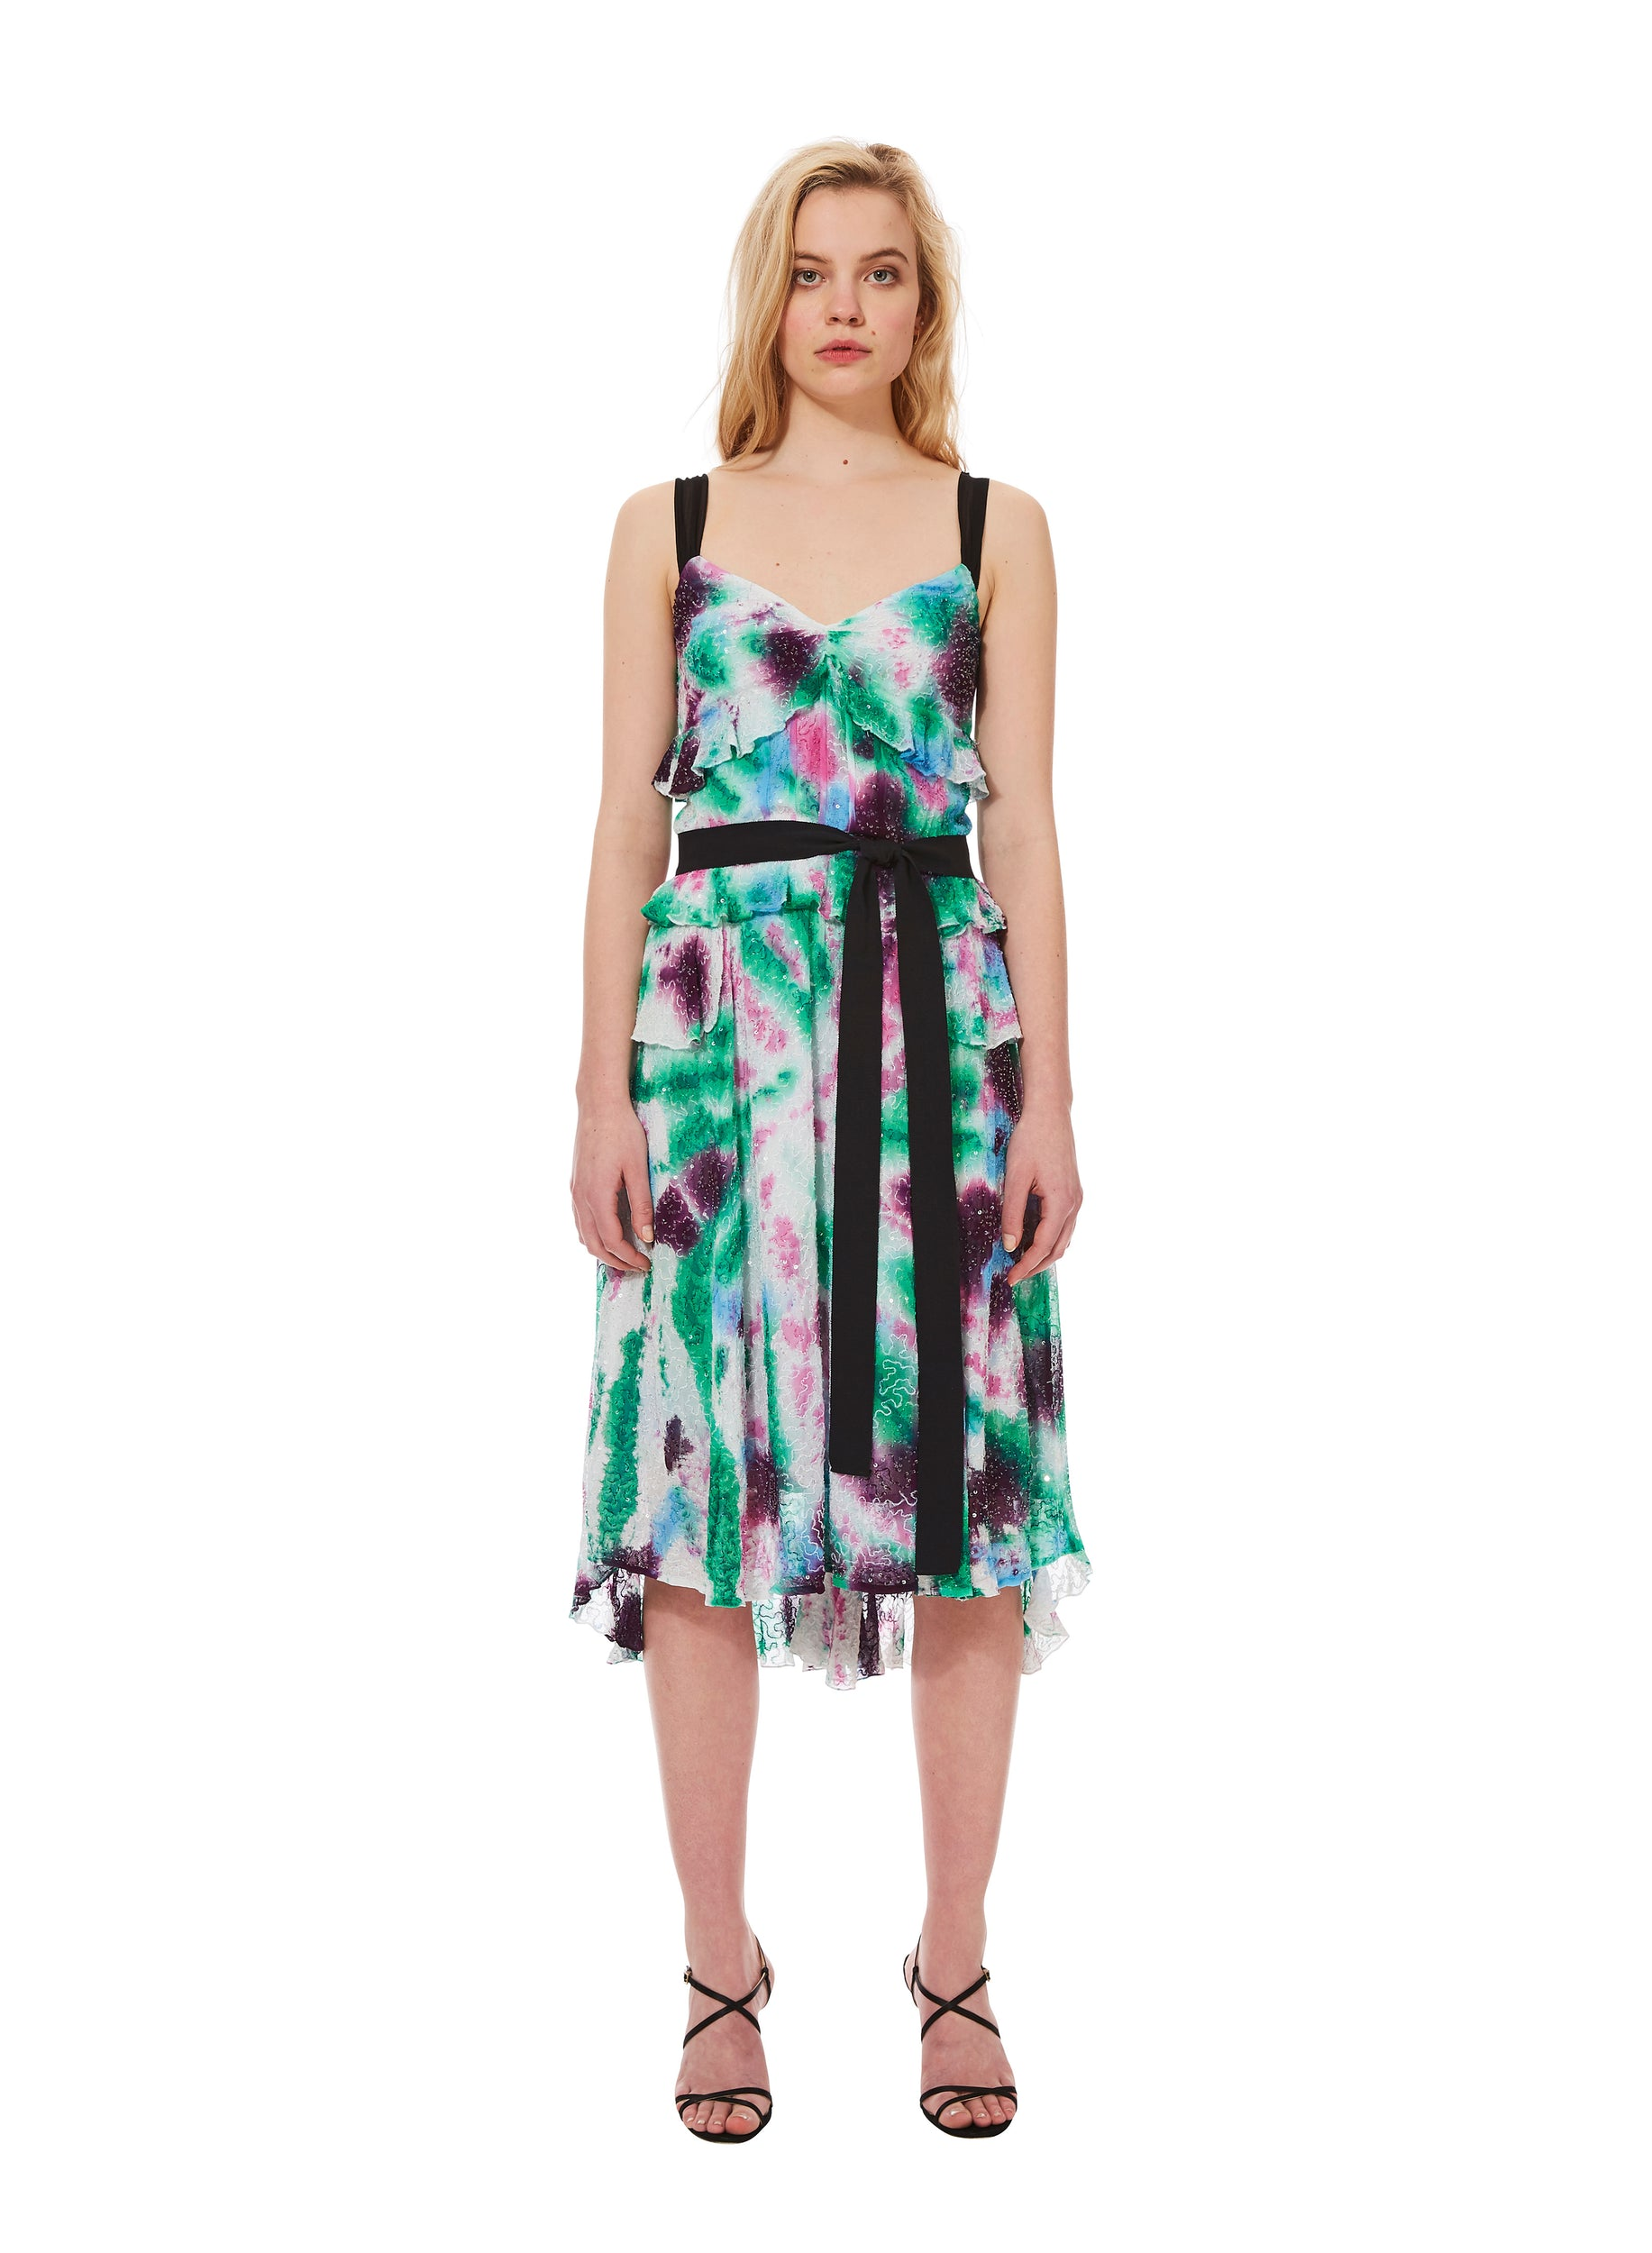 KALEIDOSCOPE TIE-DYE dress